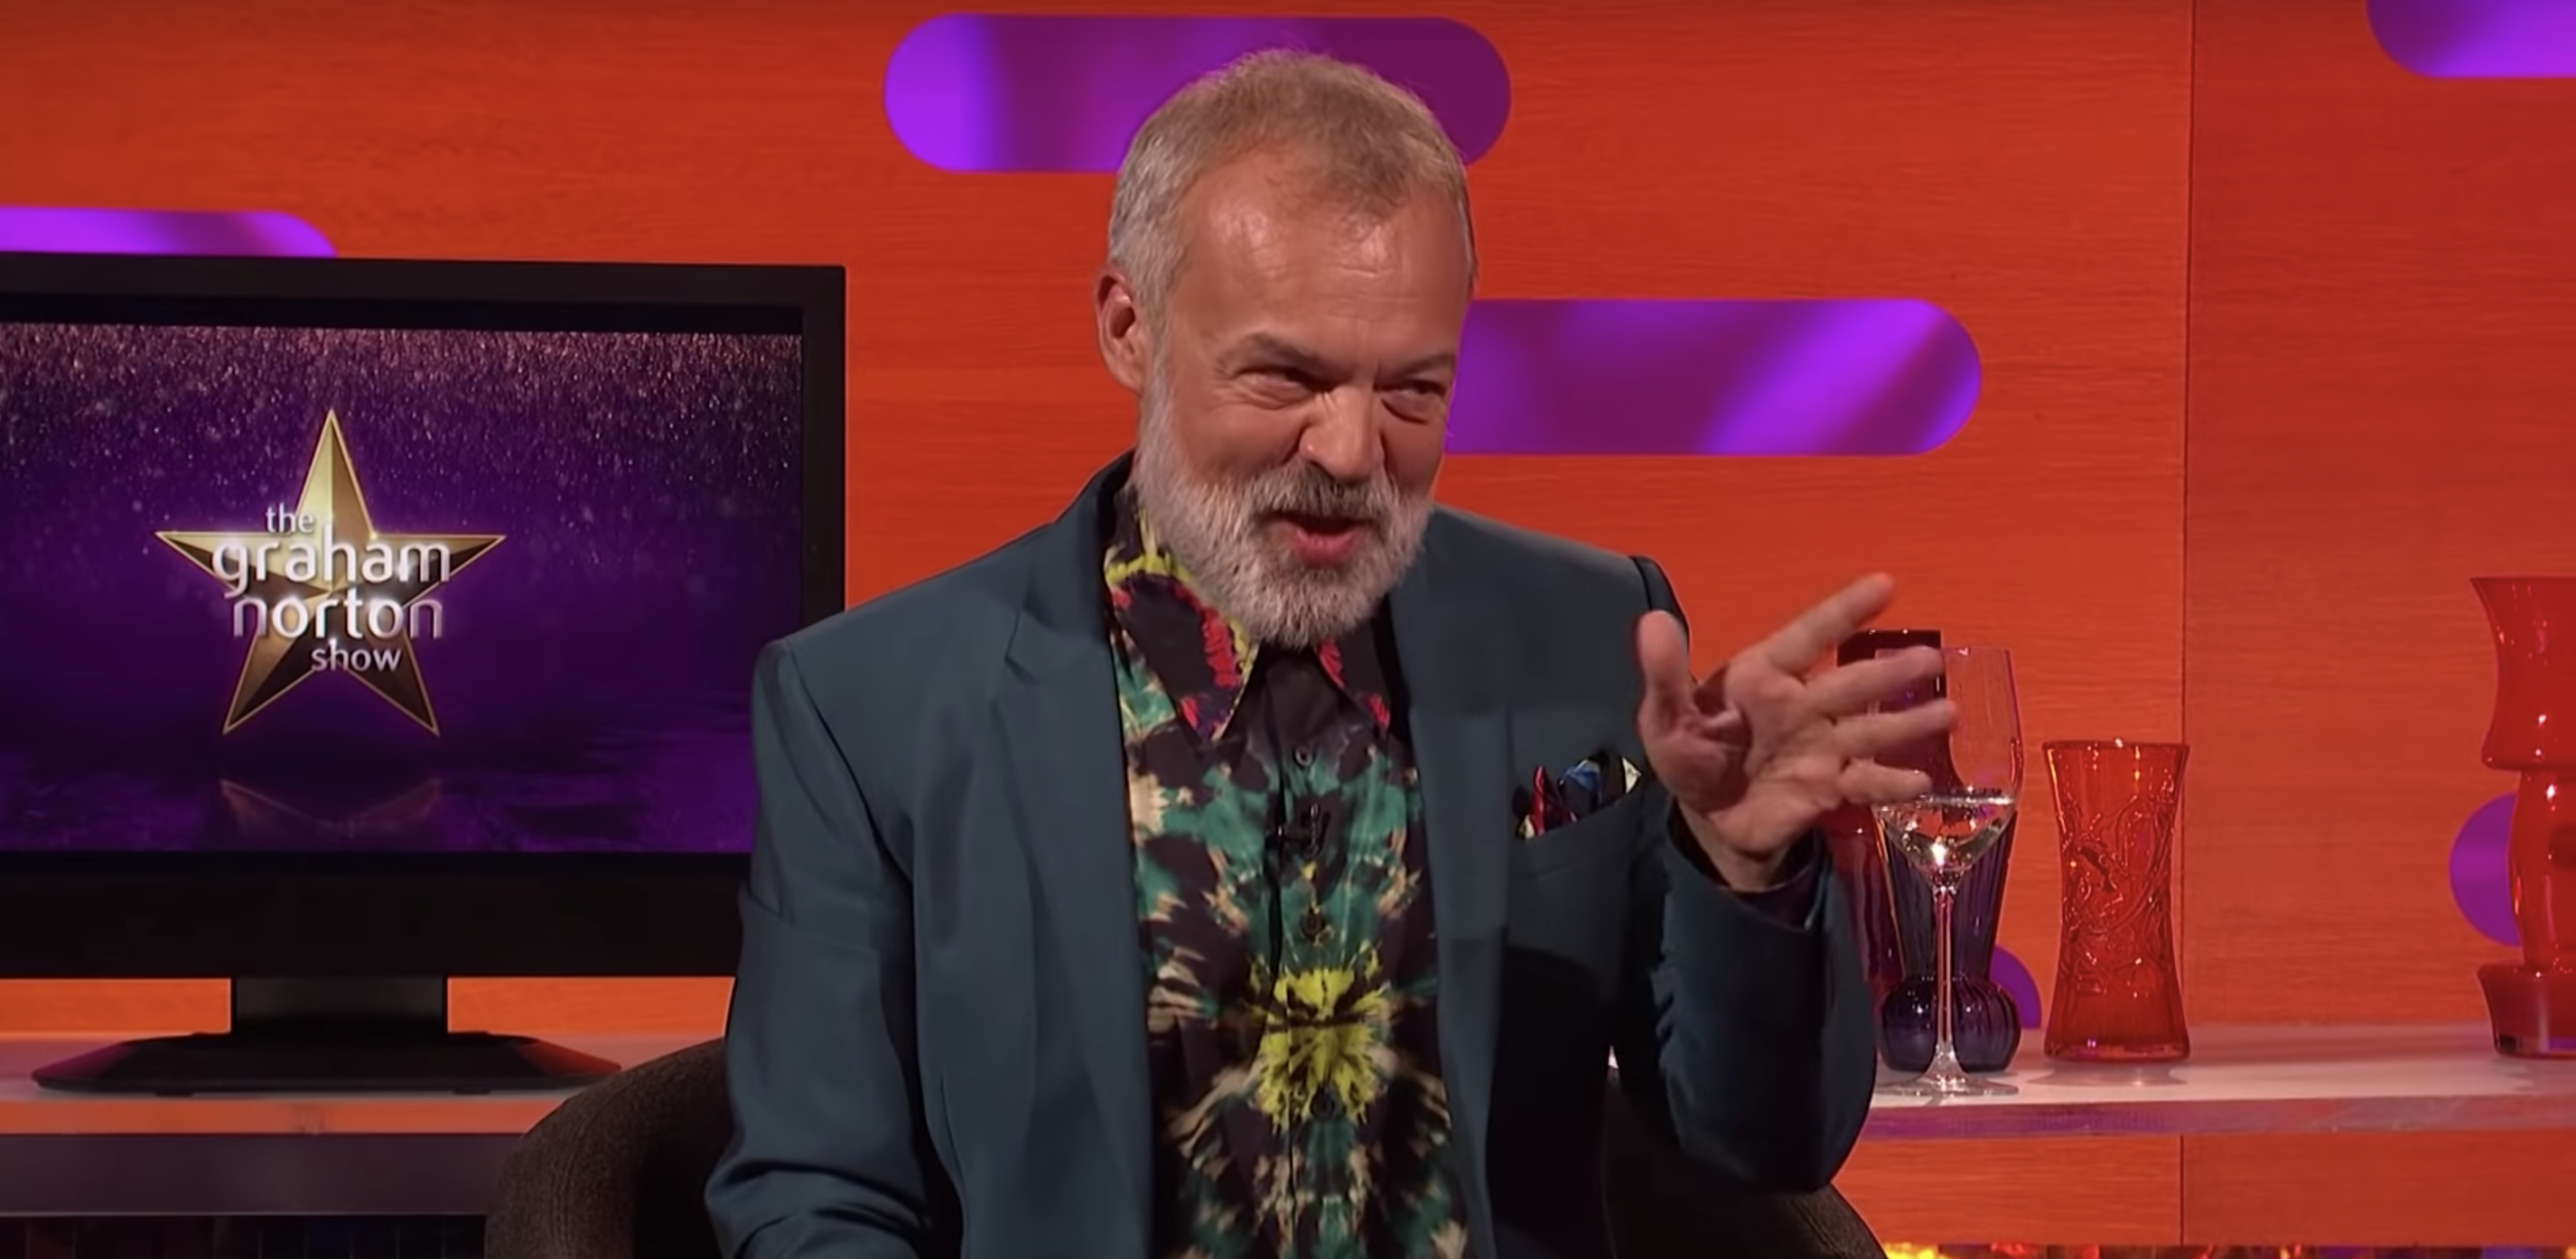 The Graham Norton Show lines up a major Friends star for next month